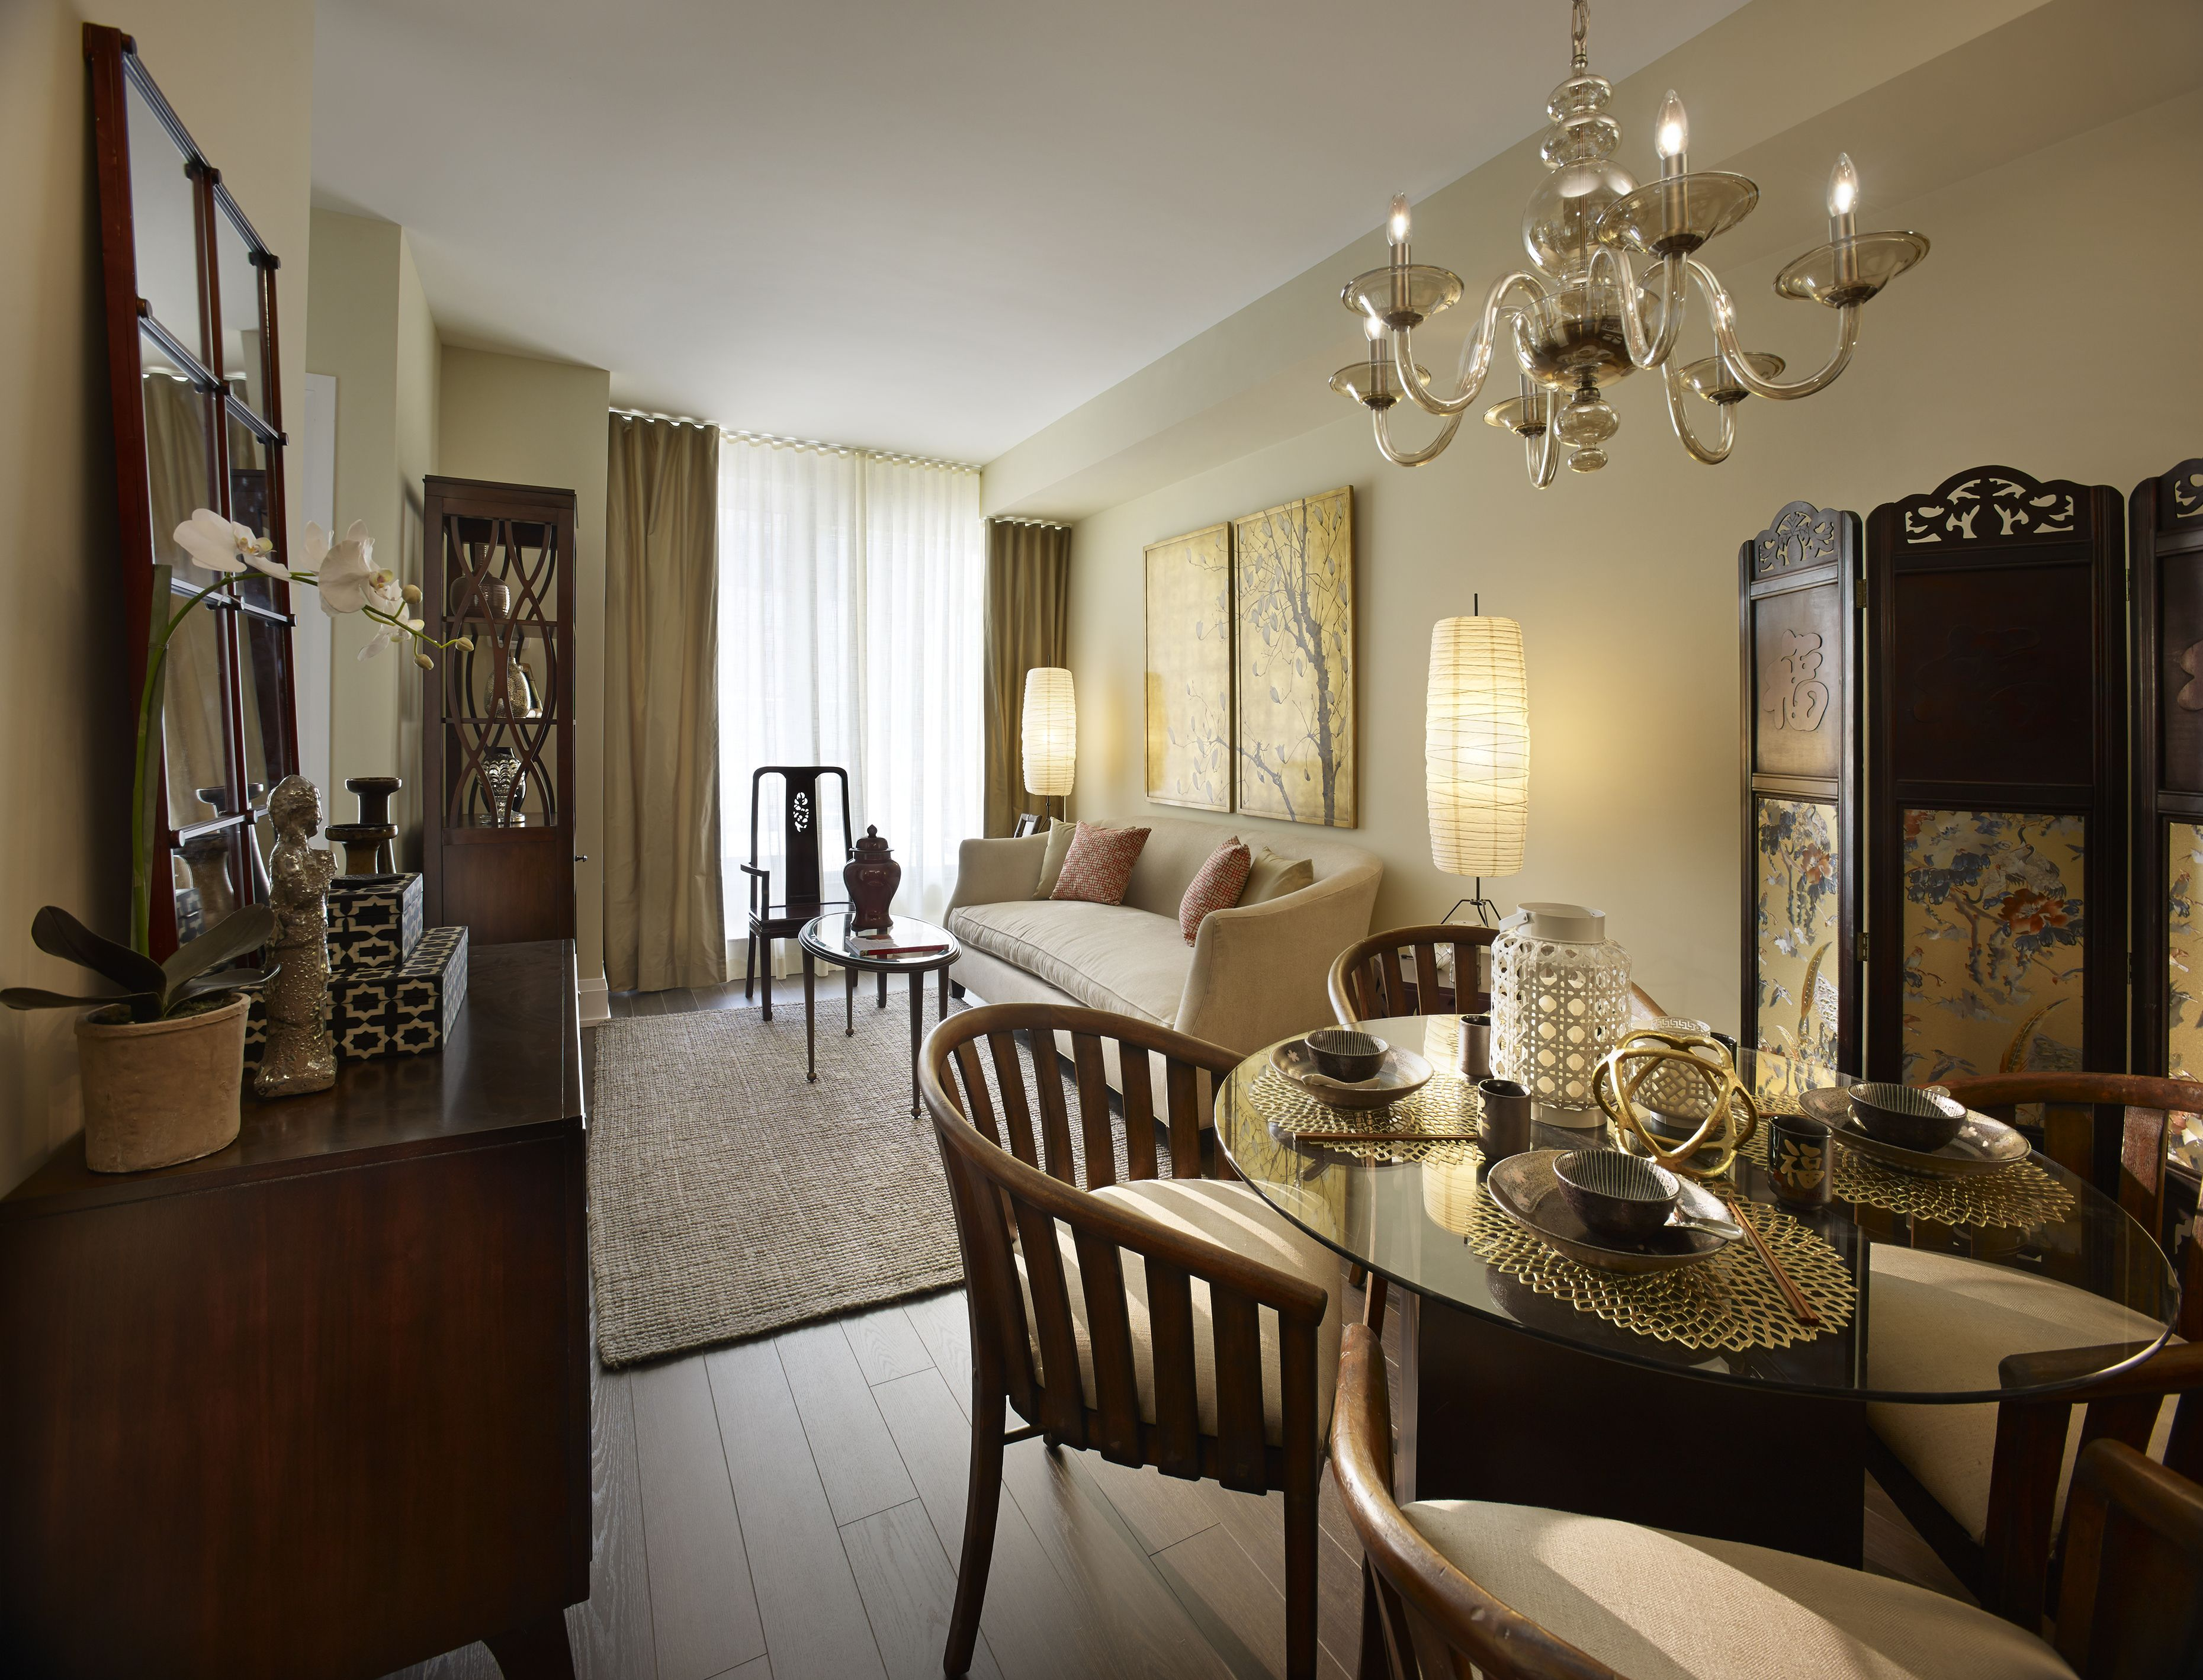 The Living And Dining Room Of AsianSilk Designer Model Suite At Aristo Avonshire Traditional Glass Asian Inspired Chandelier Calming Neutral